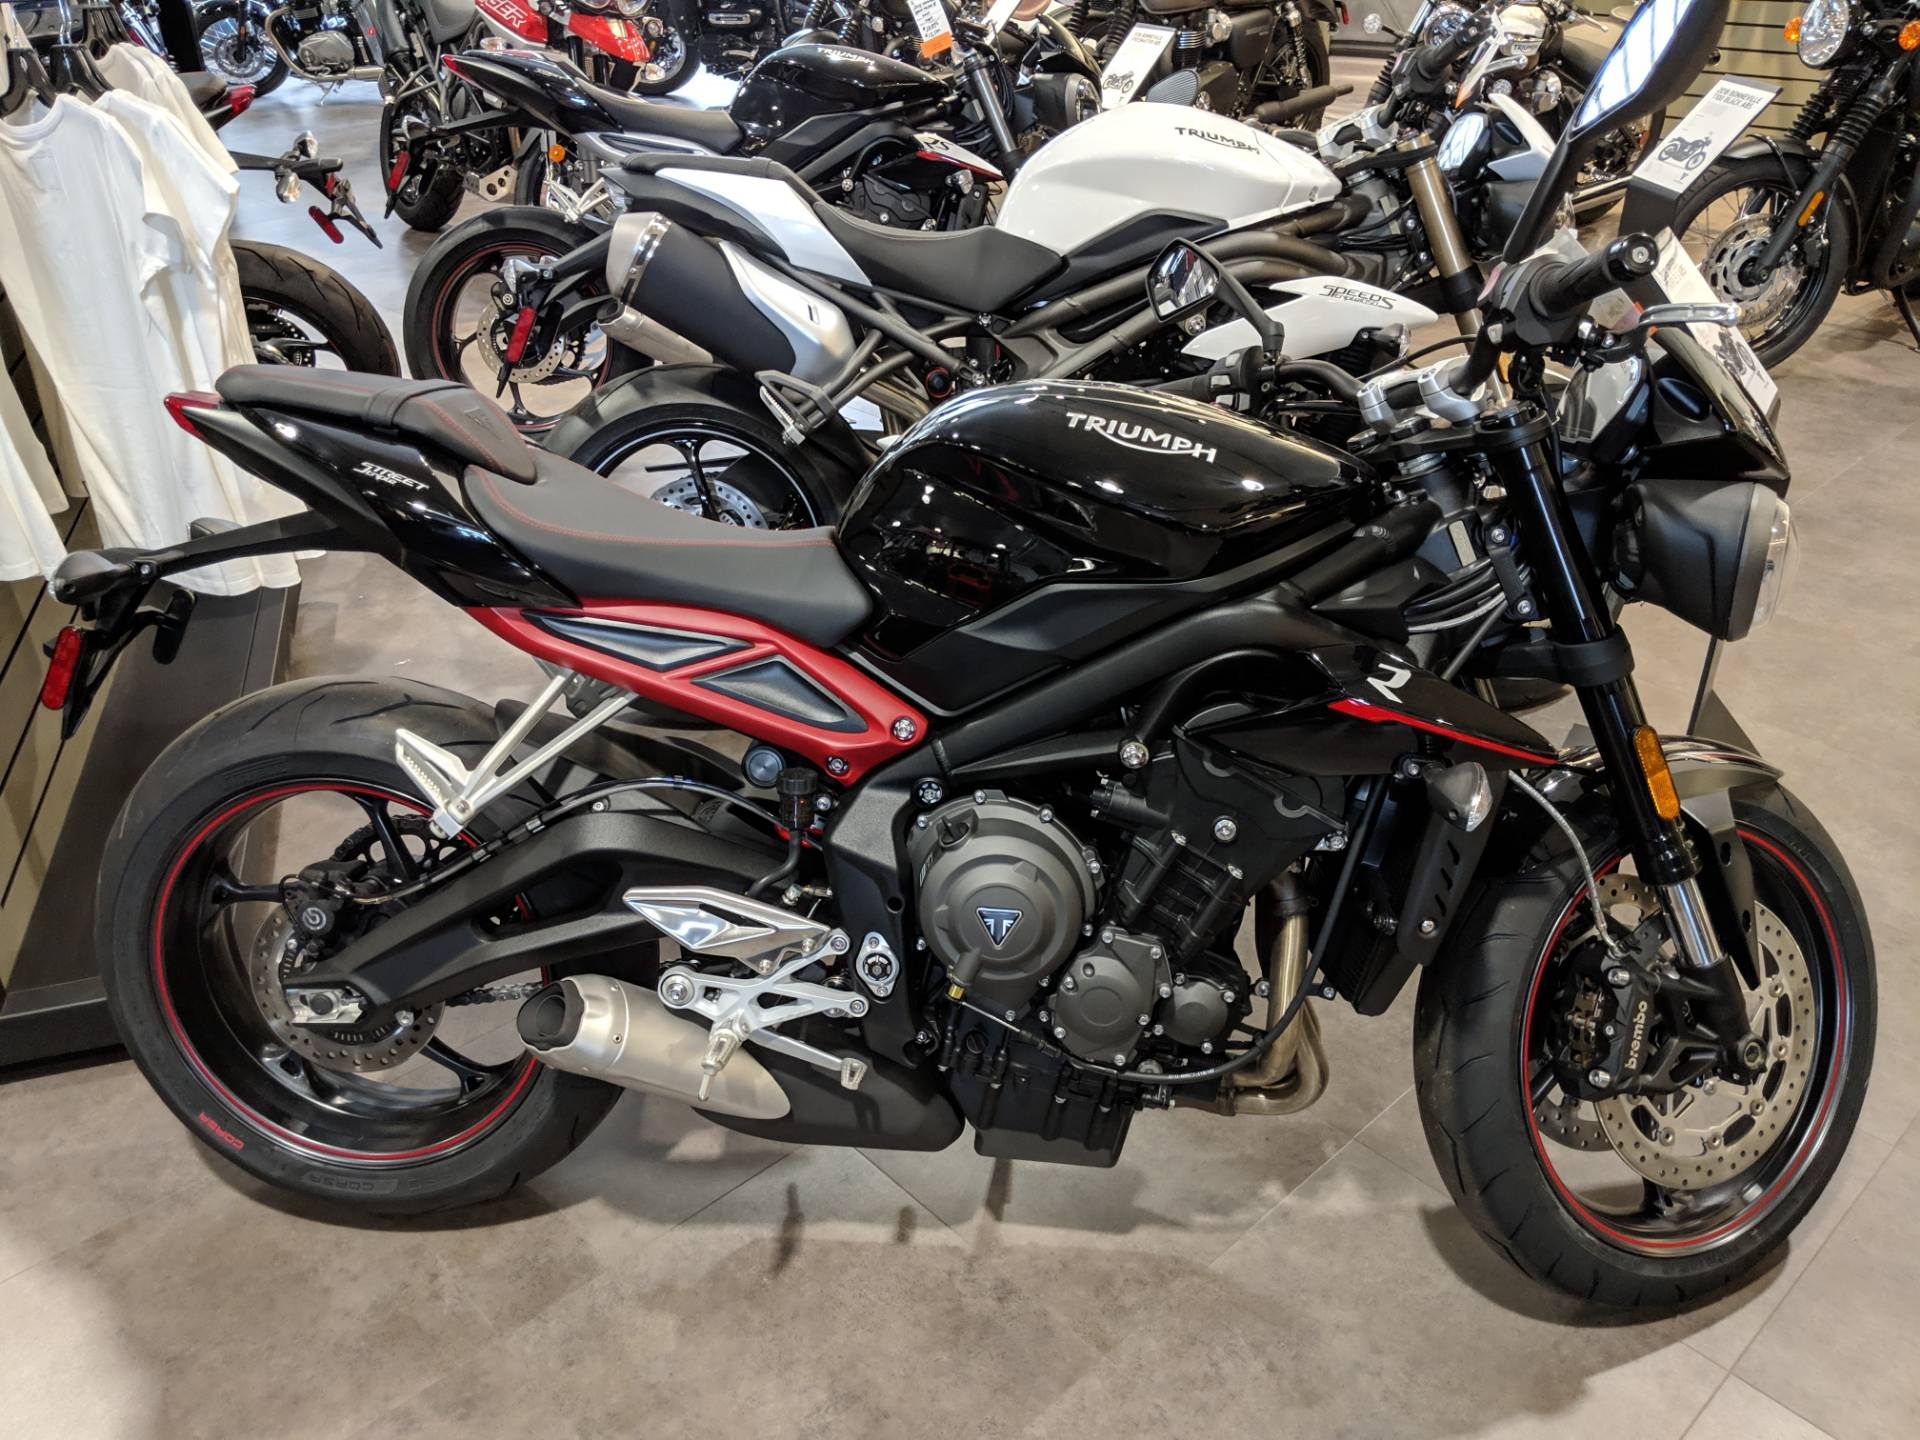 New 2018 Triumph Street Triple R Lrh Motorcycles In Rapid City Sd